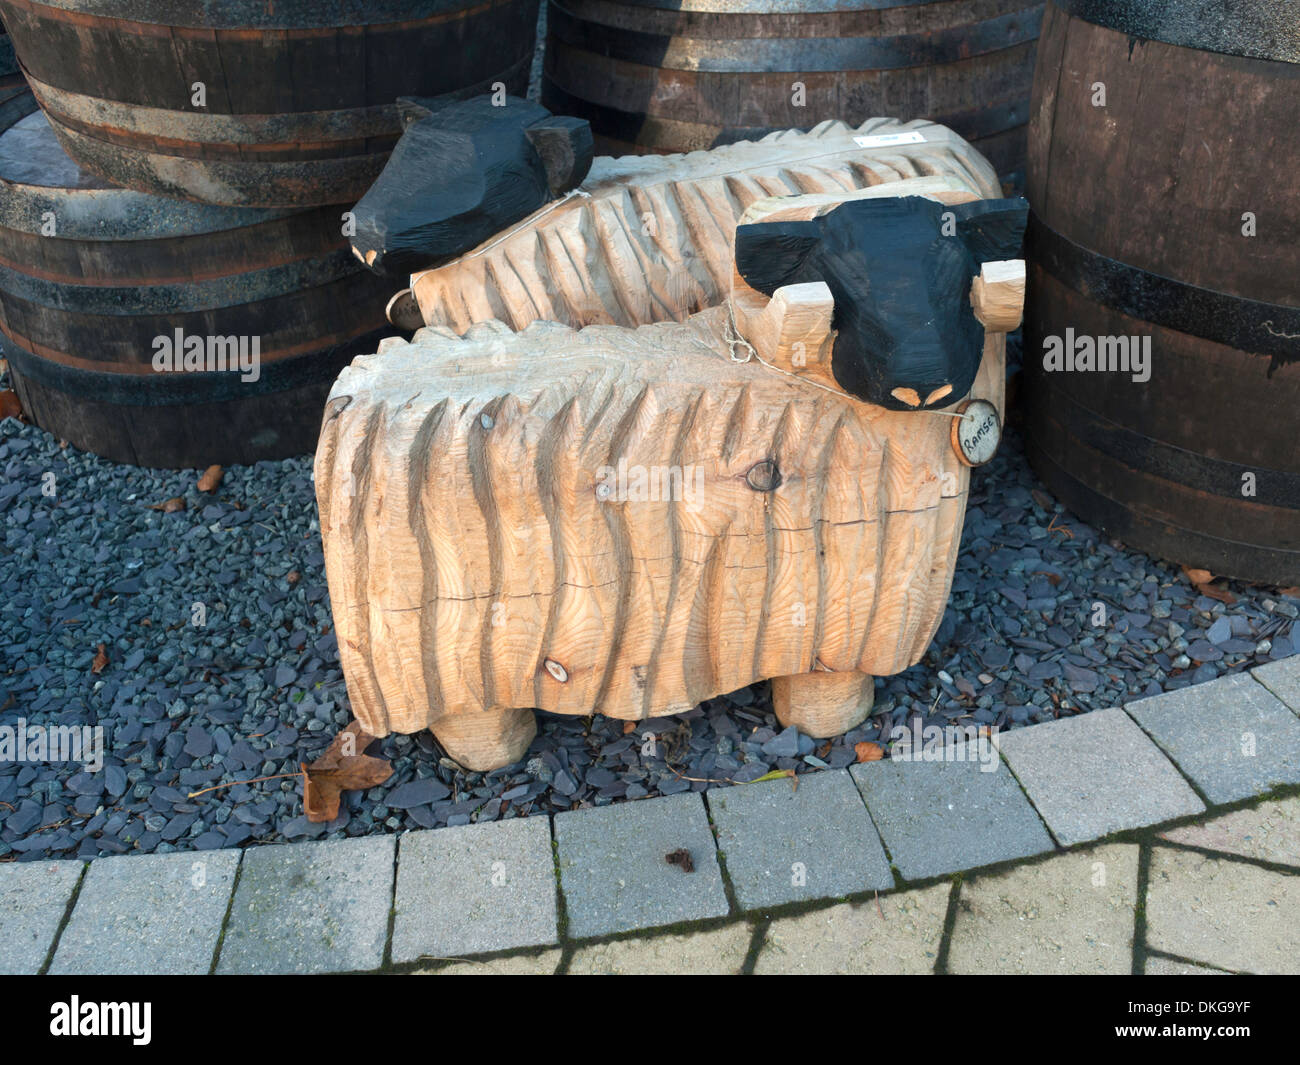 Near life sized carved wooden sheep garden ornaments stock photo royalty free image 63668627 - Wooden garden ornaments ...